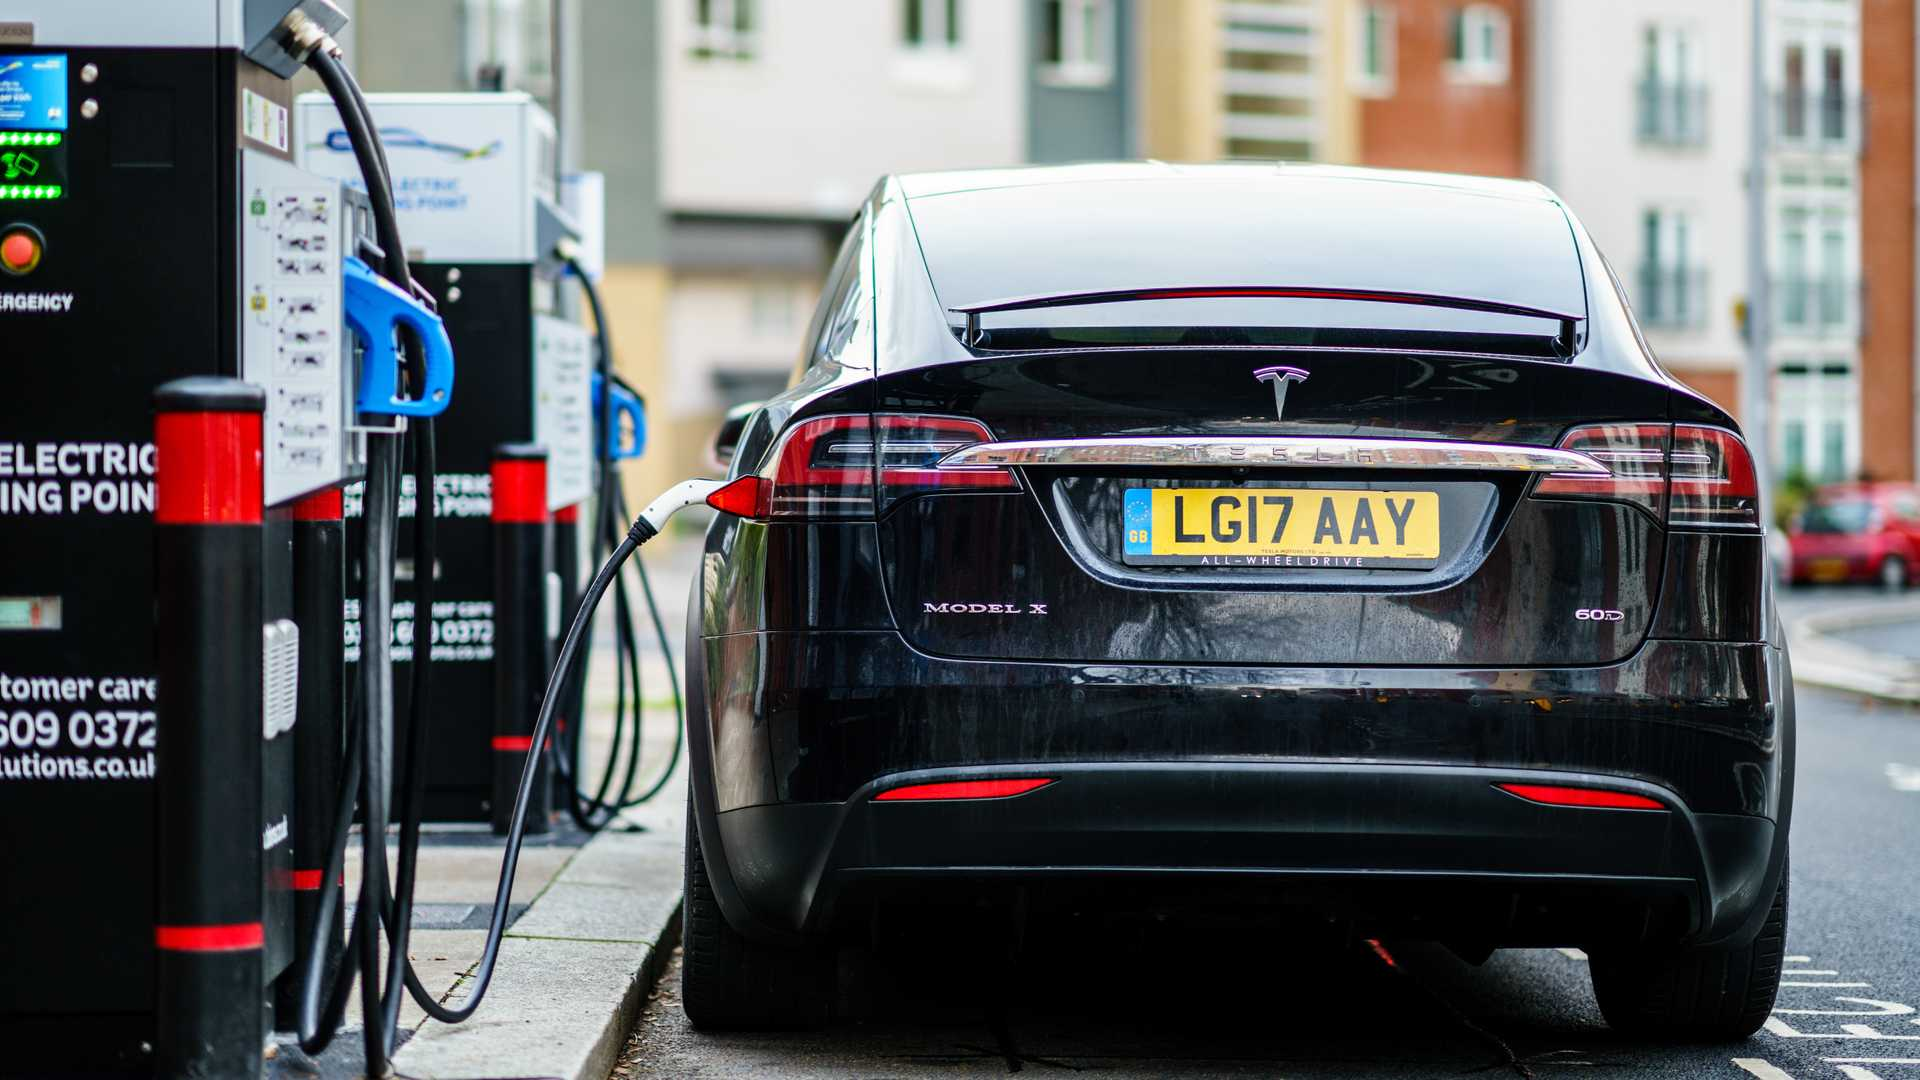 Government ramps up funding for on-street charge electric car points